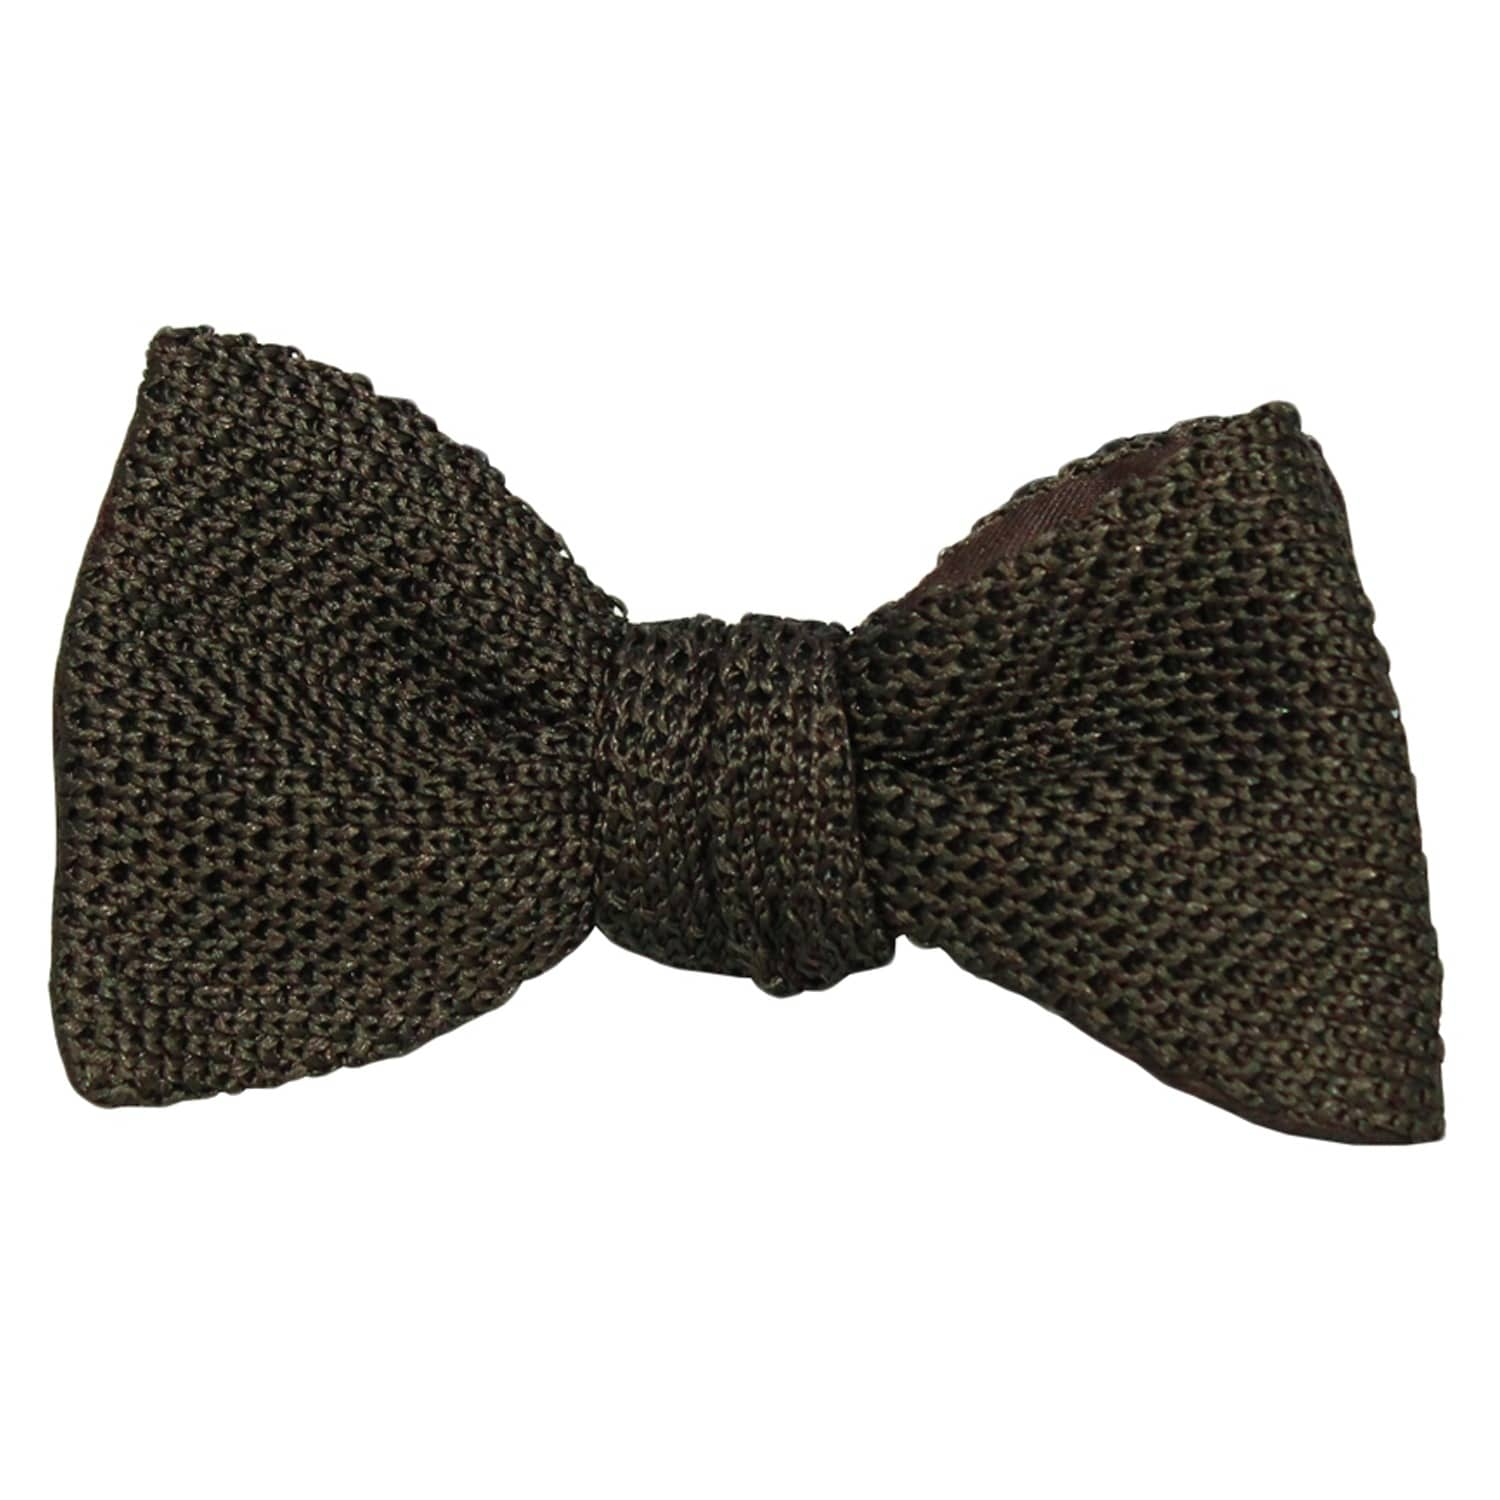 40 Colori Mens Knitted and Woven Self-Tie Butterfly Silk Bow Tie Dark Brown